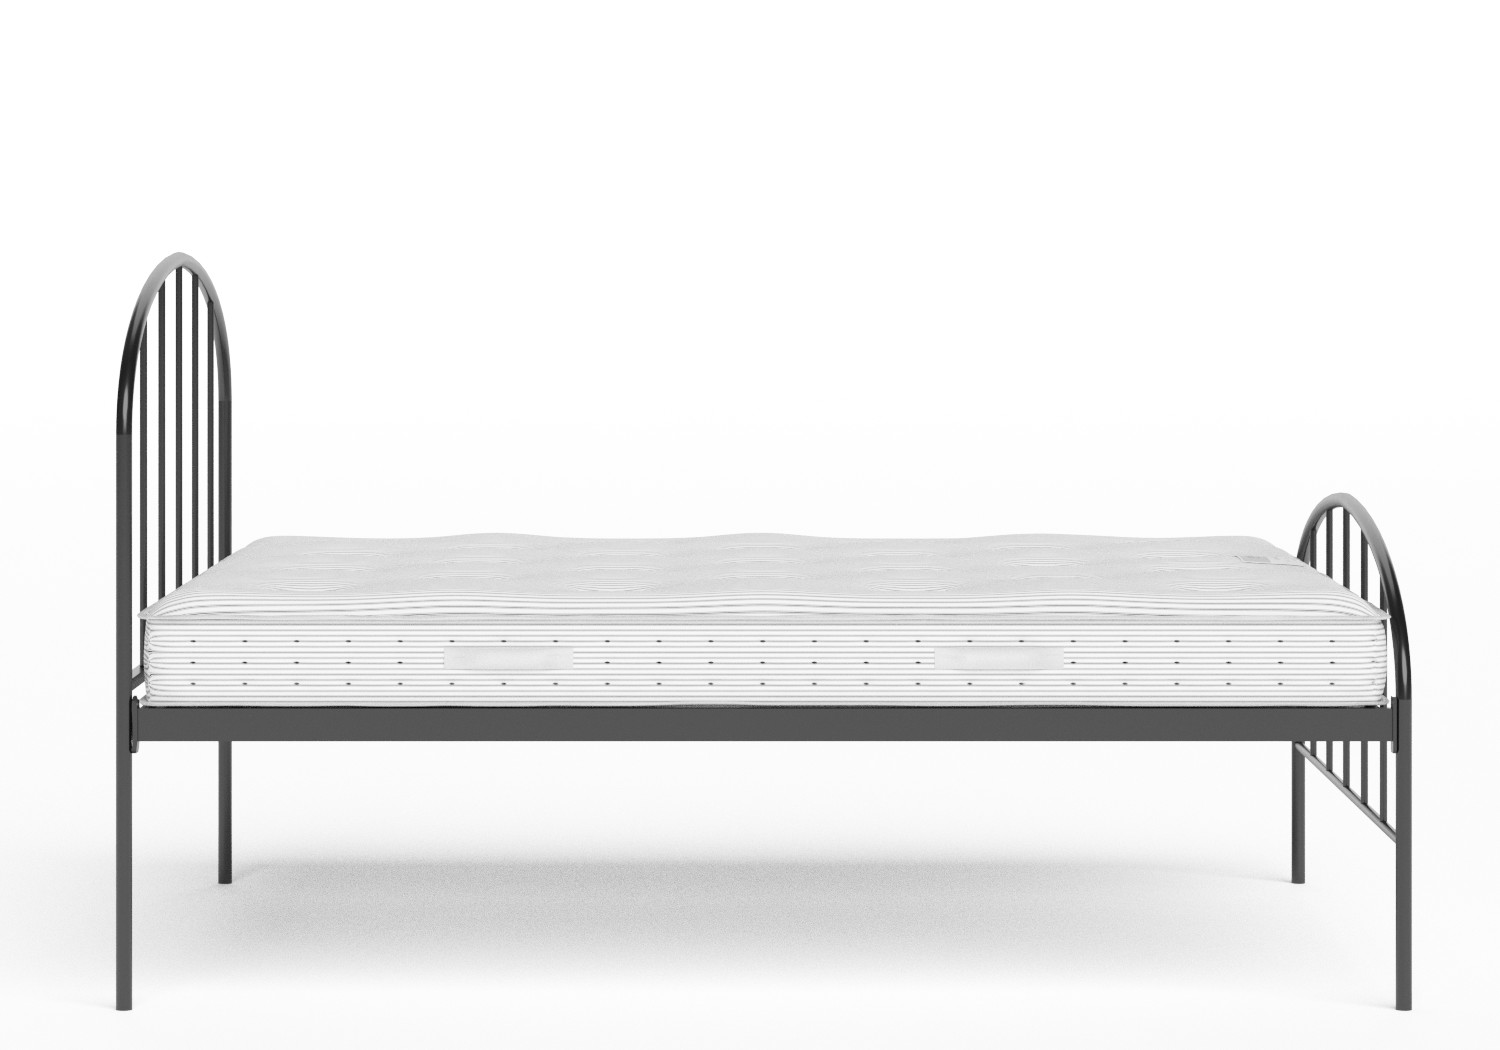 Waldo Iron/Metal Bed in Satin Black shown with Juno 1 mattress